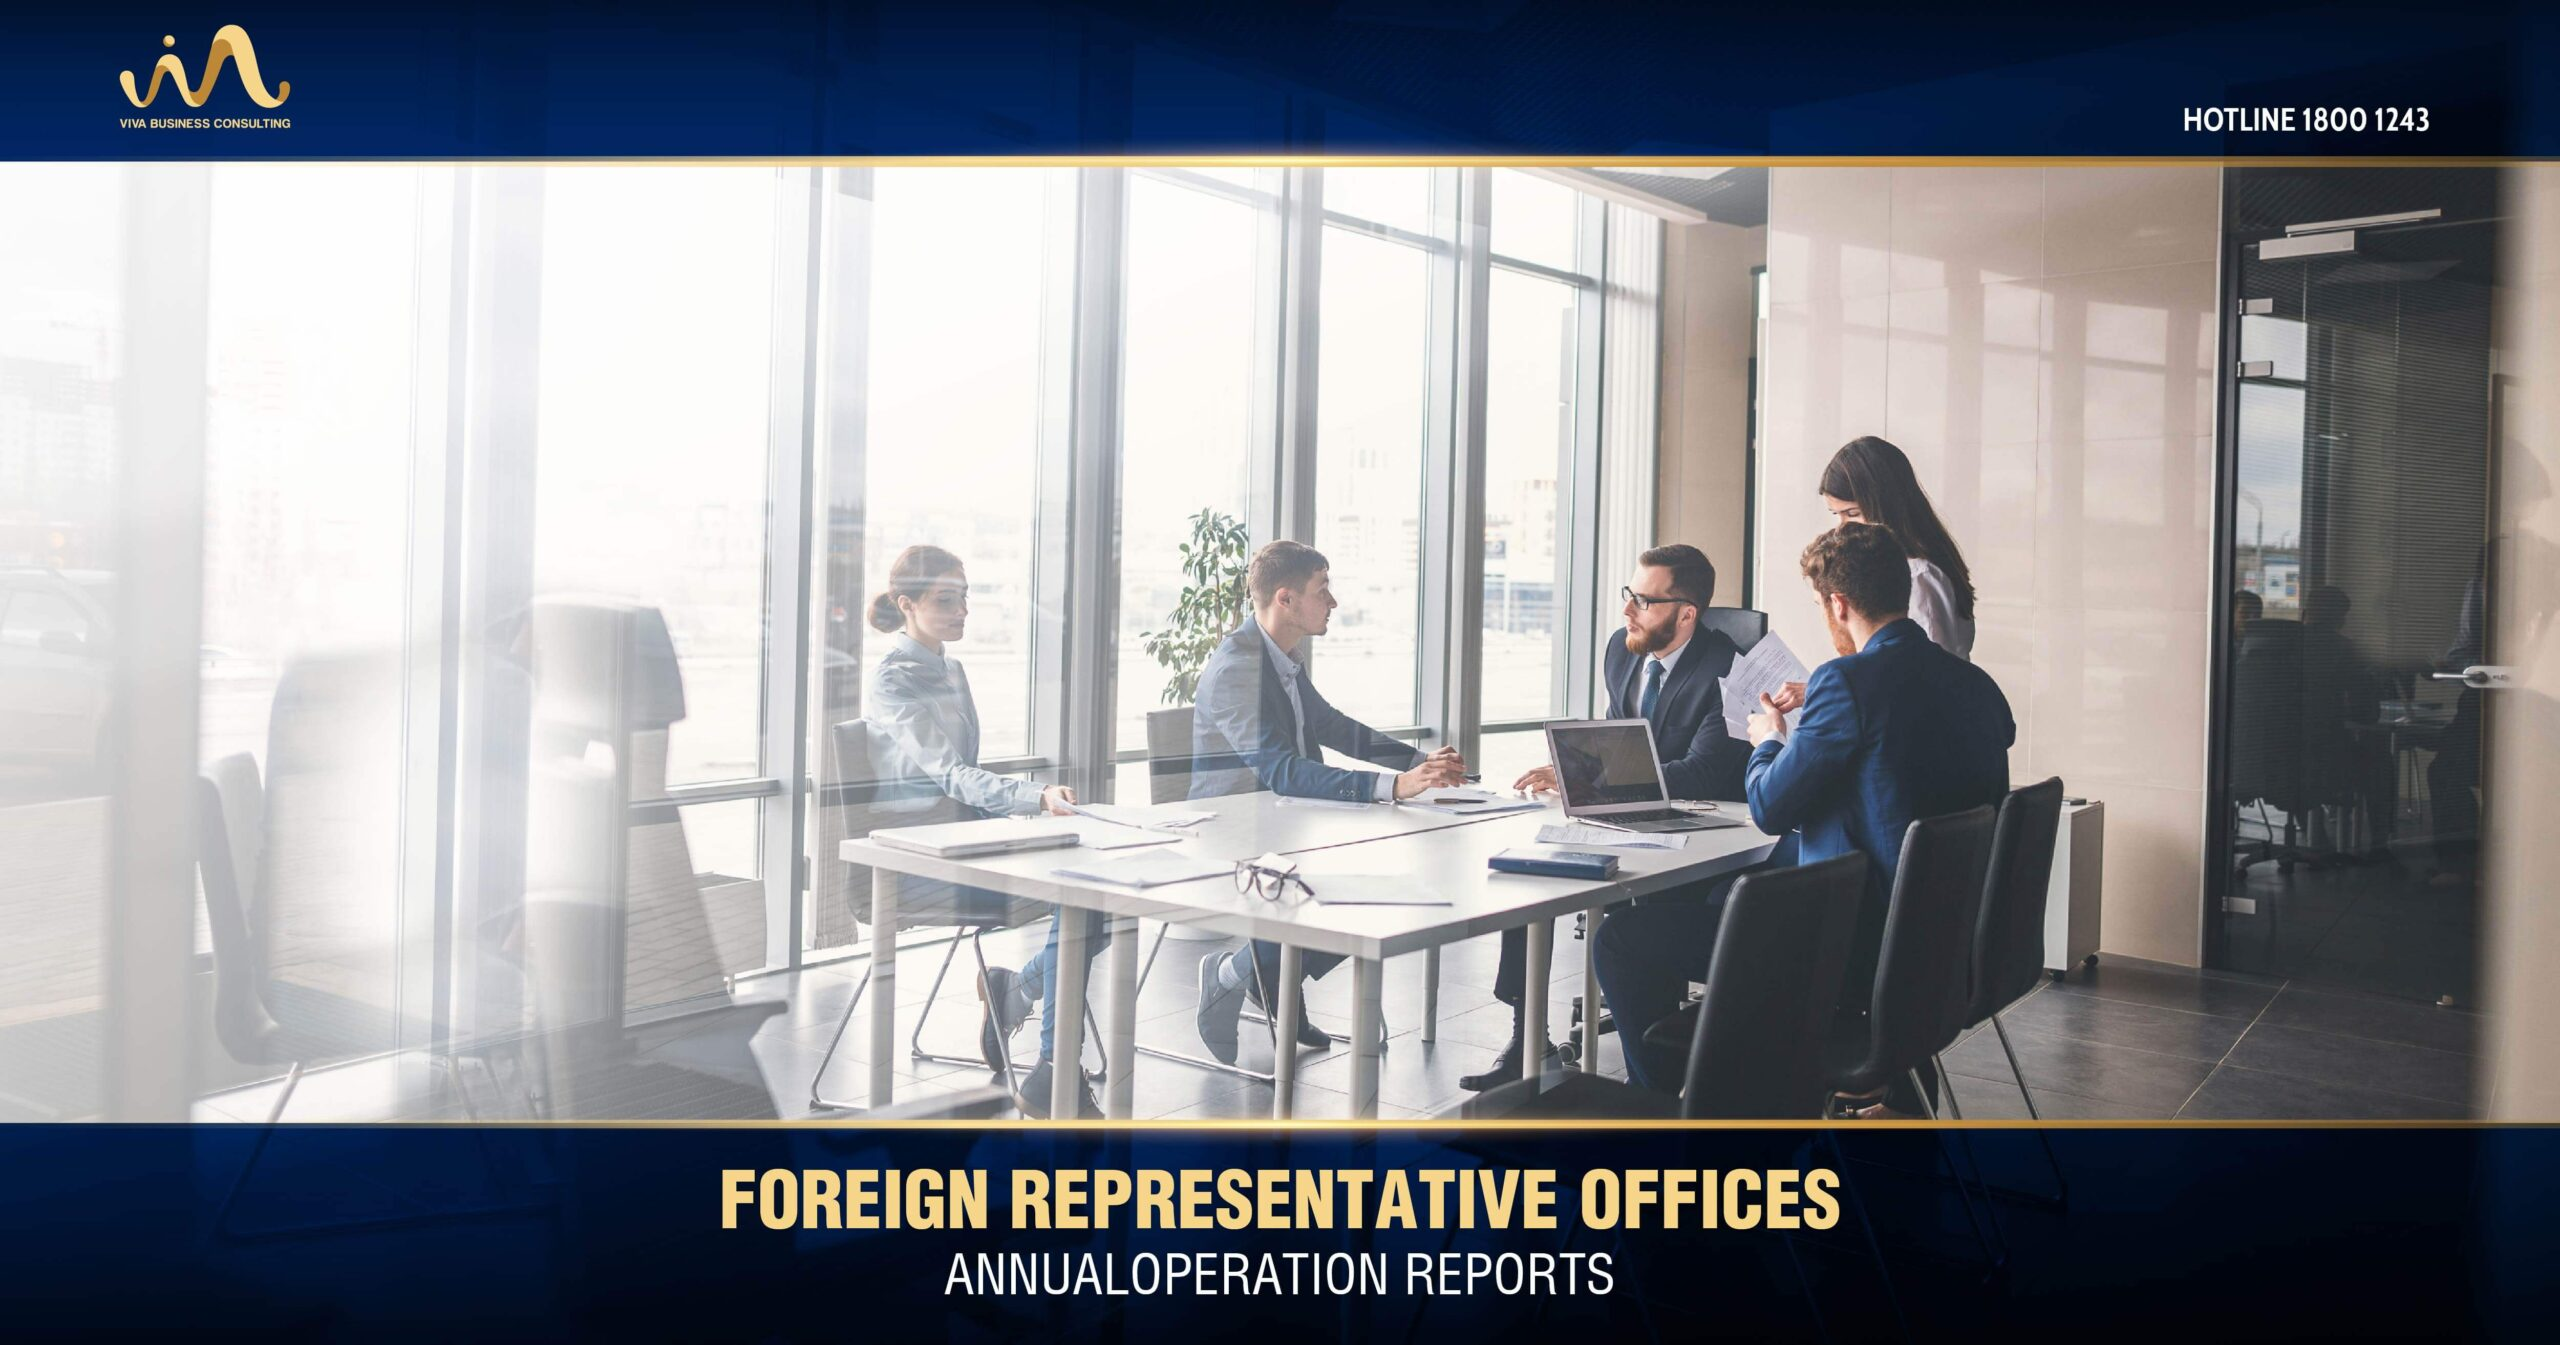 Annual Operation Reports For Foreign Representative Offices